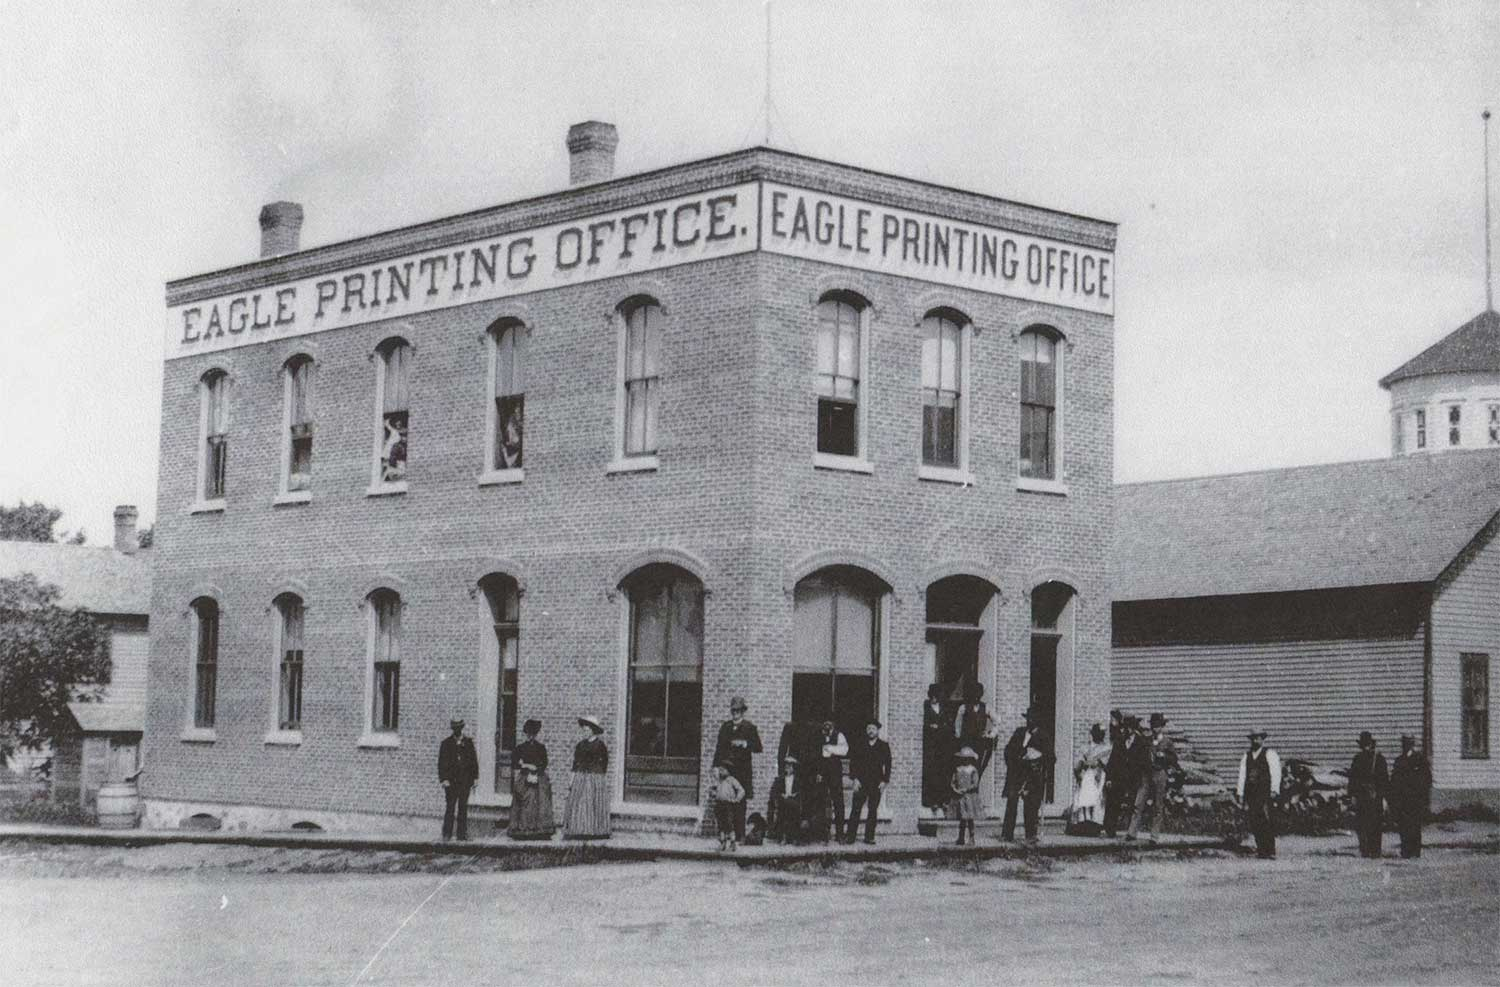 11. Eagle Printing Office